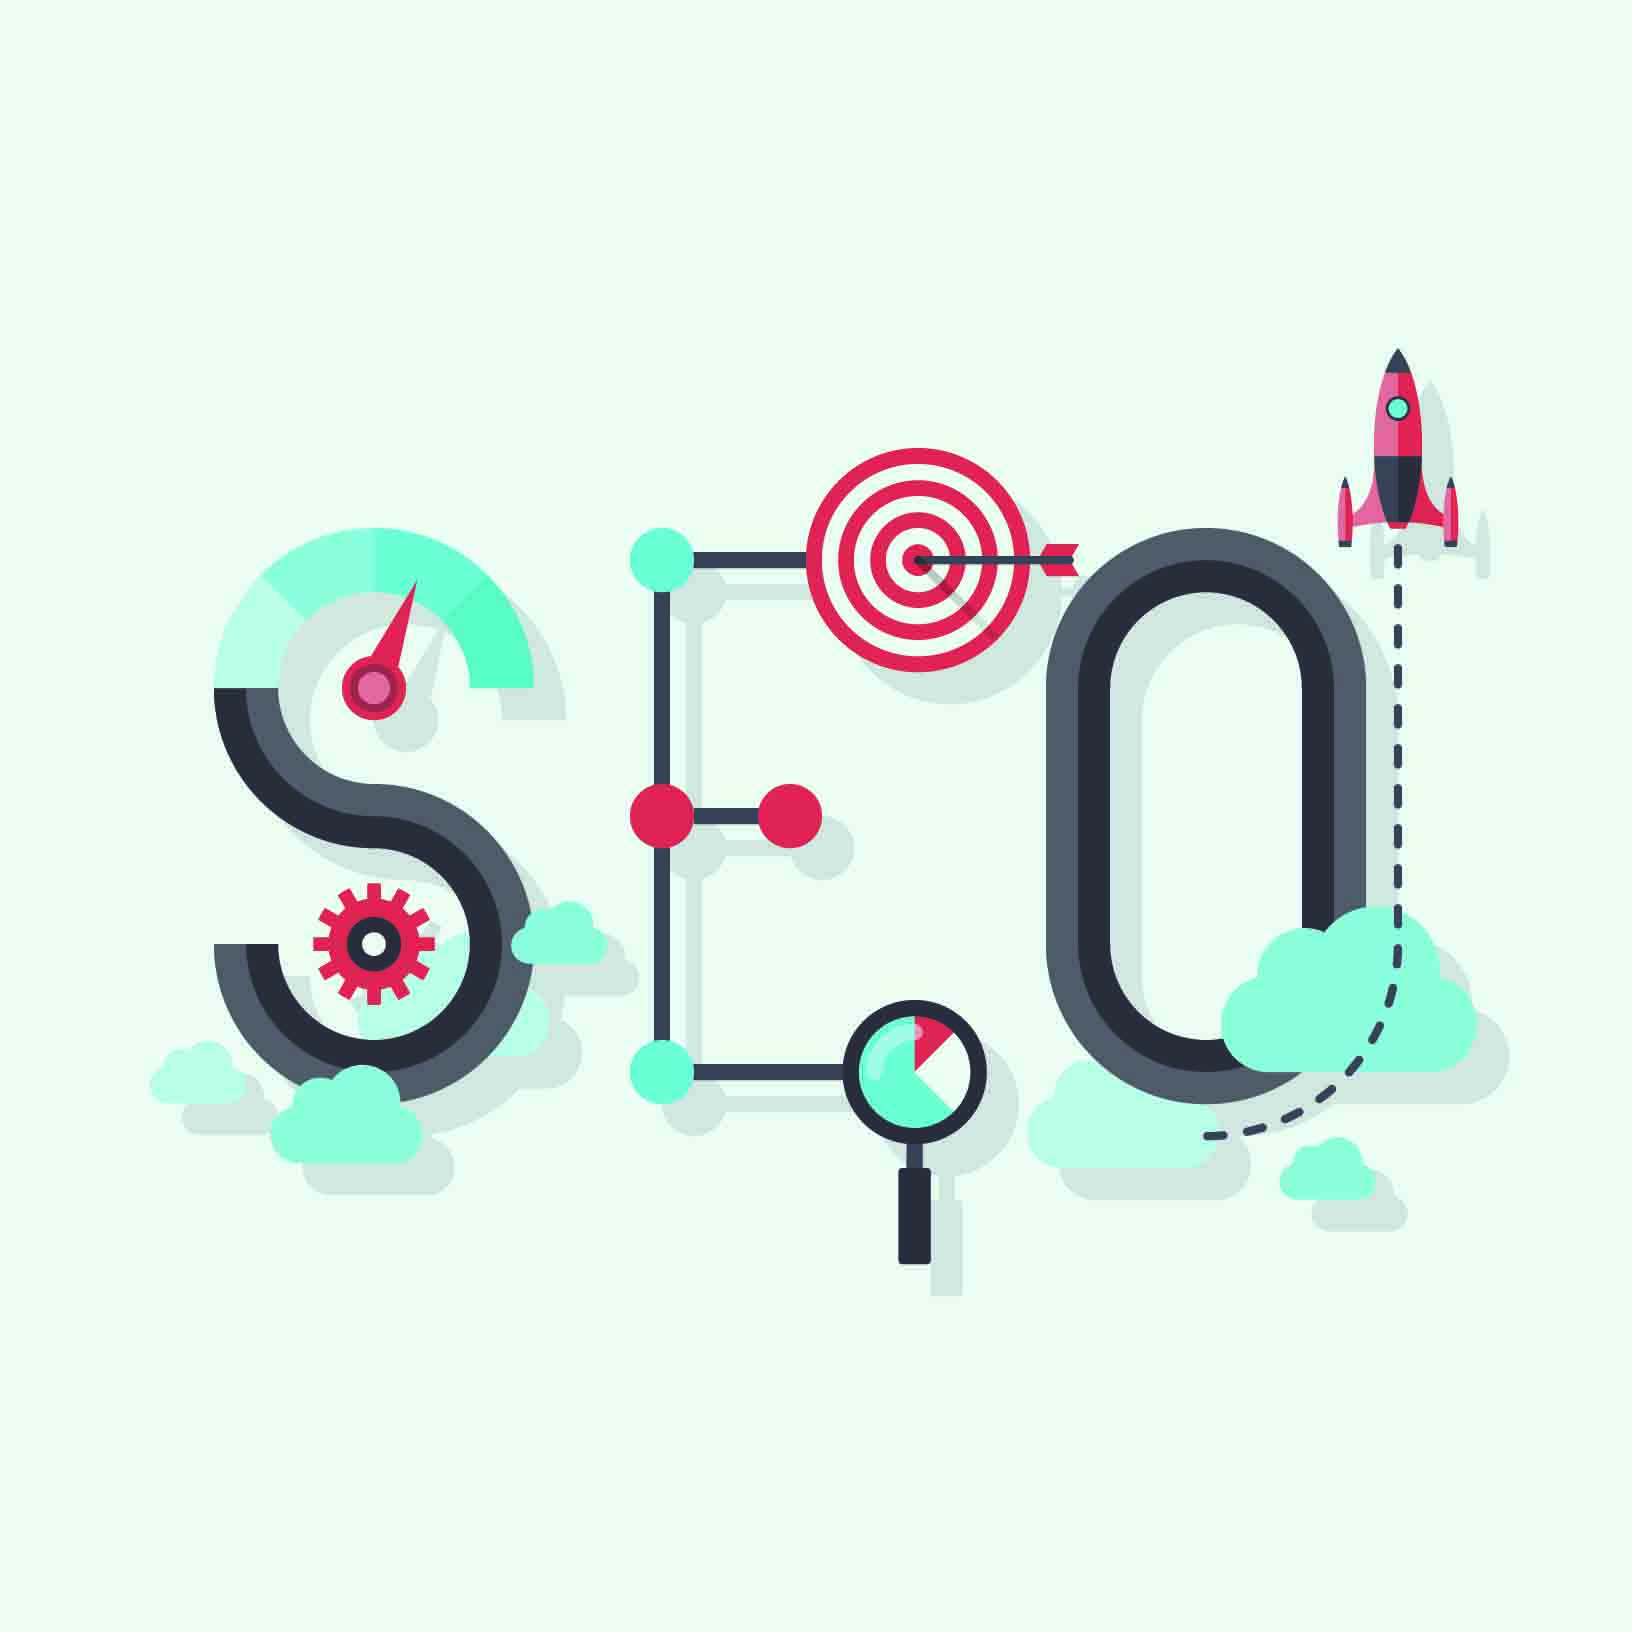 3-search-engine-optimisation-tips-to-amp-up-a-b2b-marketing-strategy